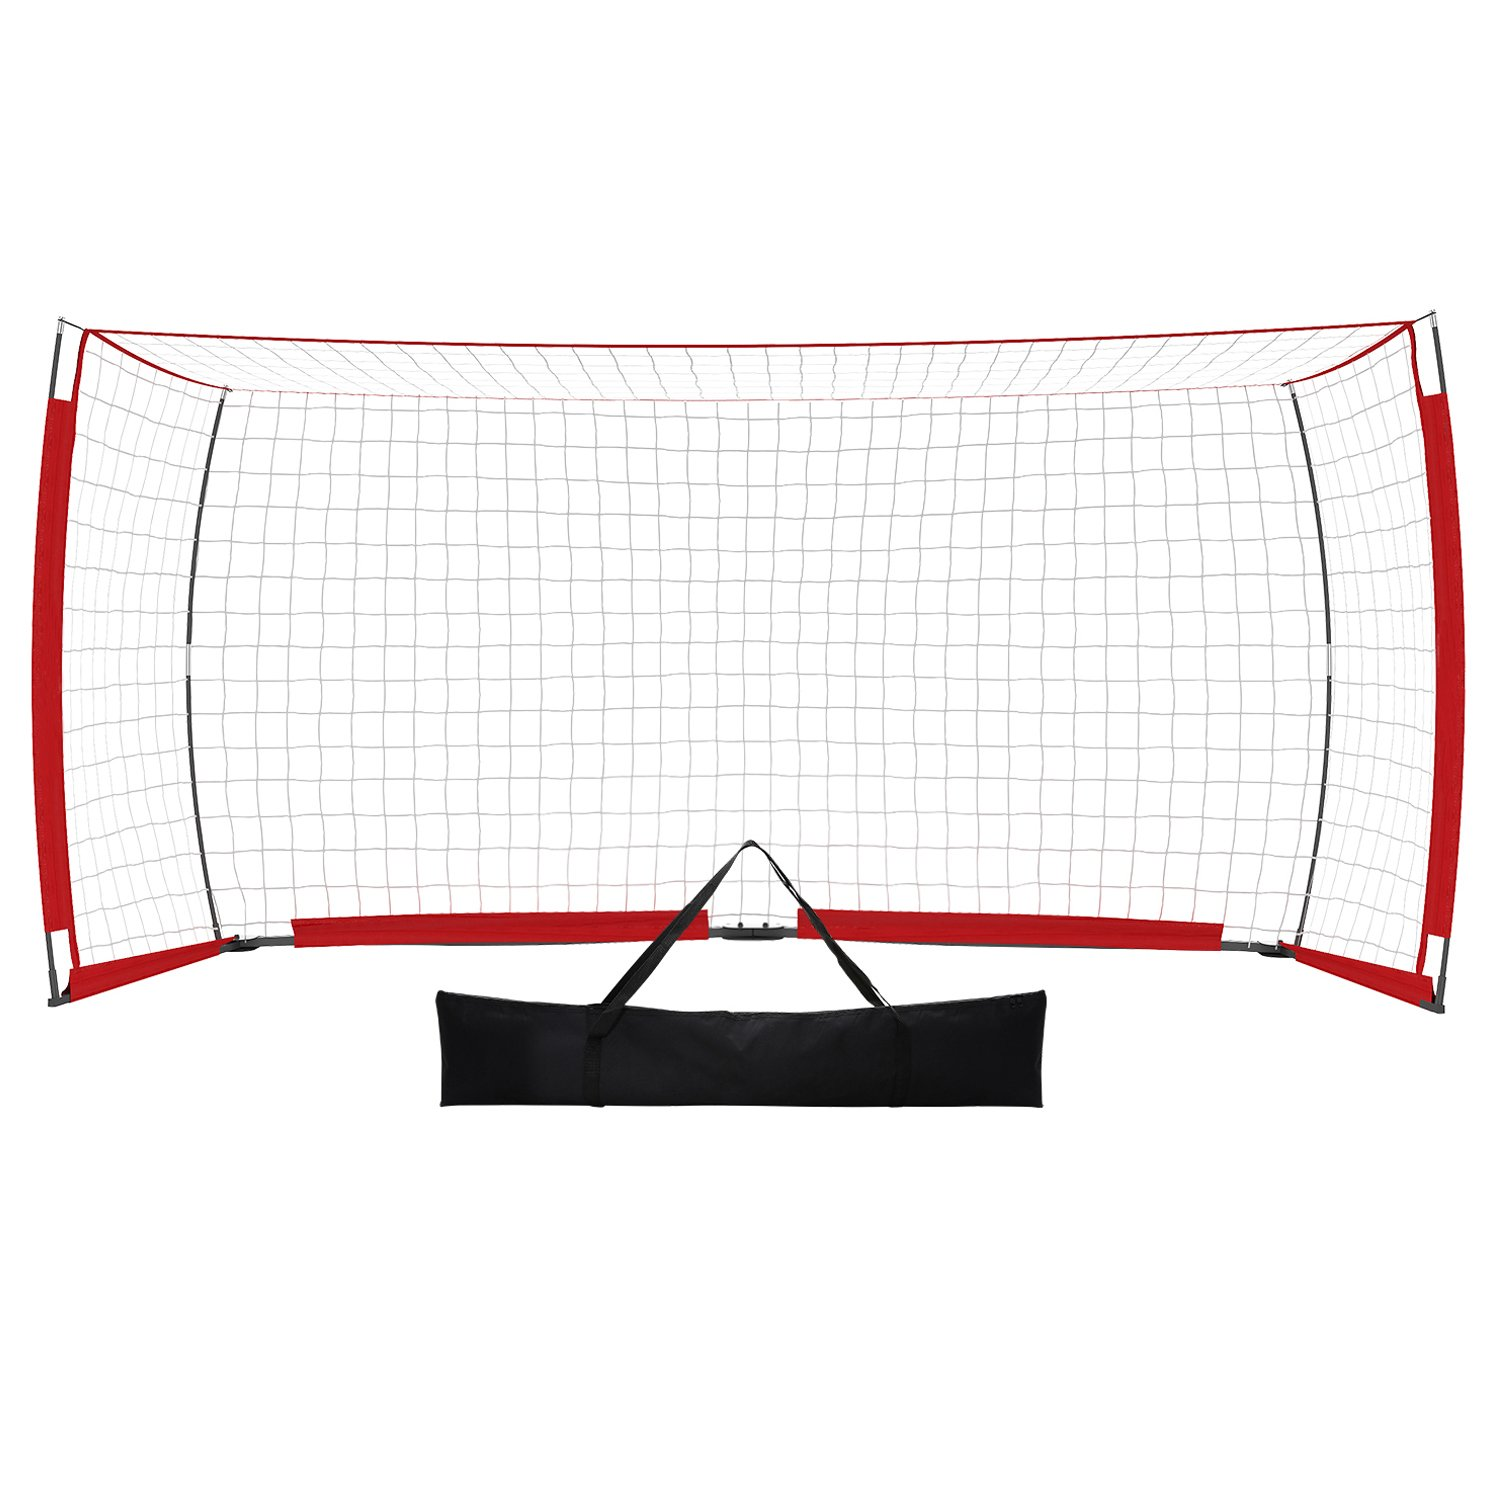 rateim Soccer Goal Net 12 x 6 ft、ポータブルと折りたたみ式蝶スタイルNet Perfect for Soccer裏庭with Carry Bag ( US Stock ) B07C1RQQ3F Soccer Goal 12x6ft-Red Soccer Goal 12x6ft-Red